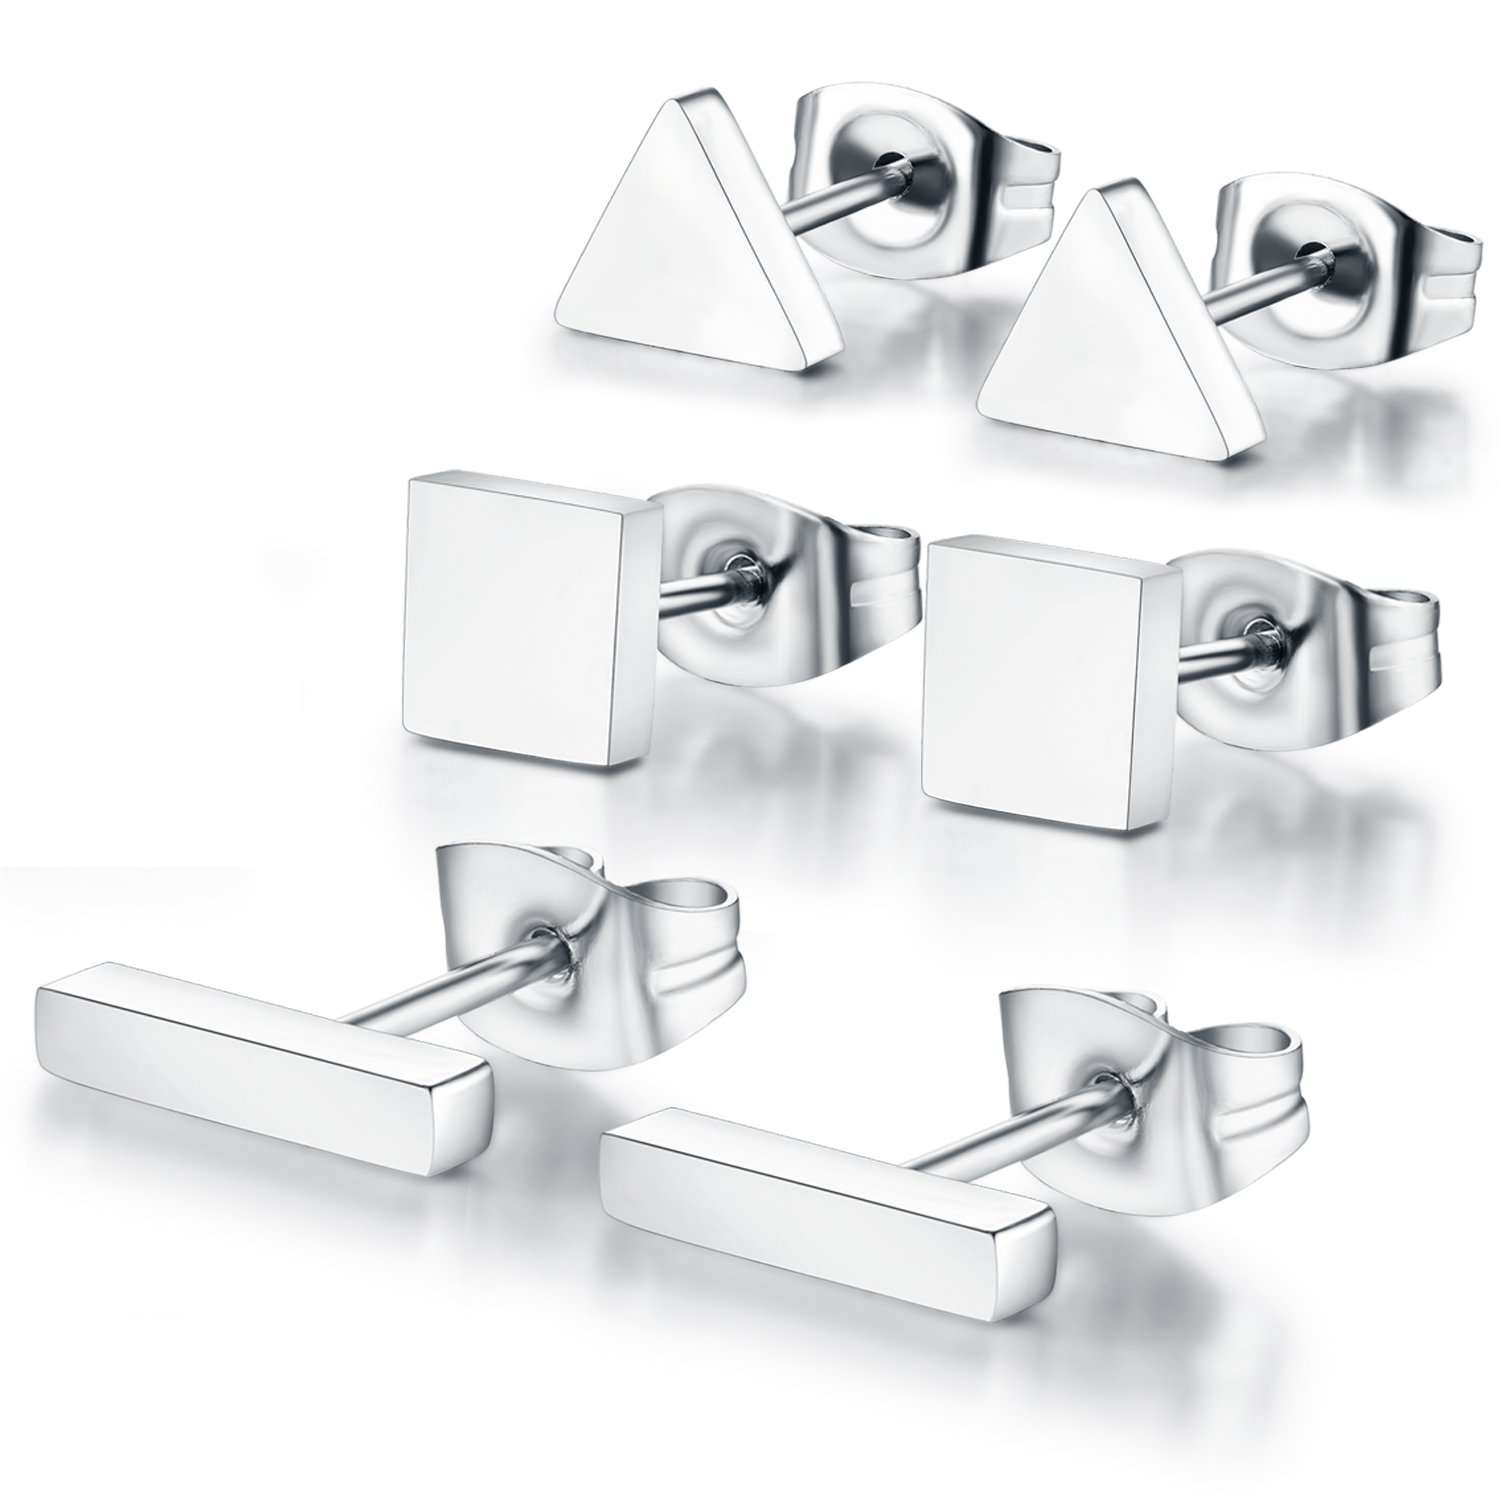 SPINEX 3 Pairs Silver Stud Earring Set Pierced (Rectangle, Square, Triangle) by SPINEX